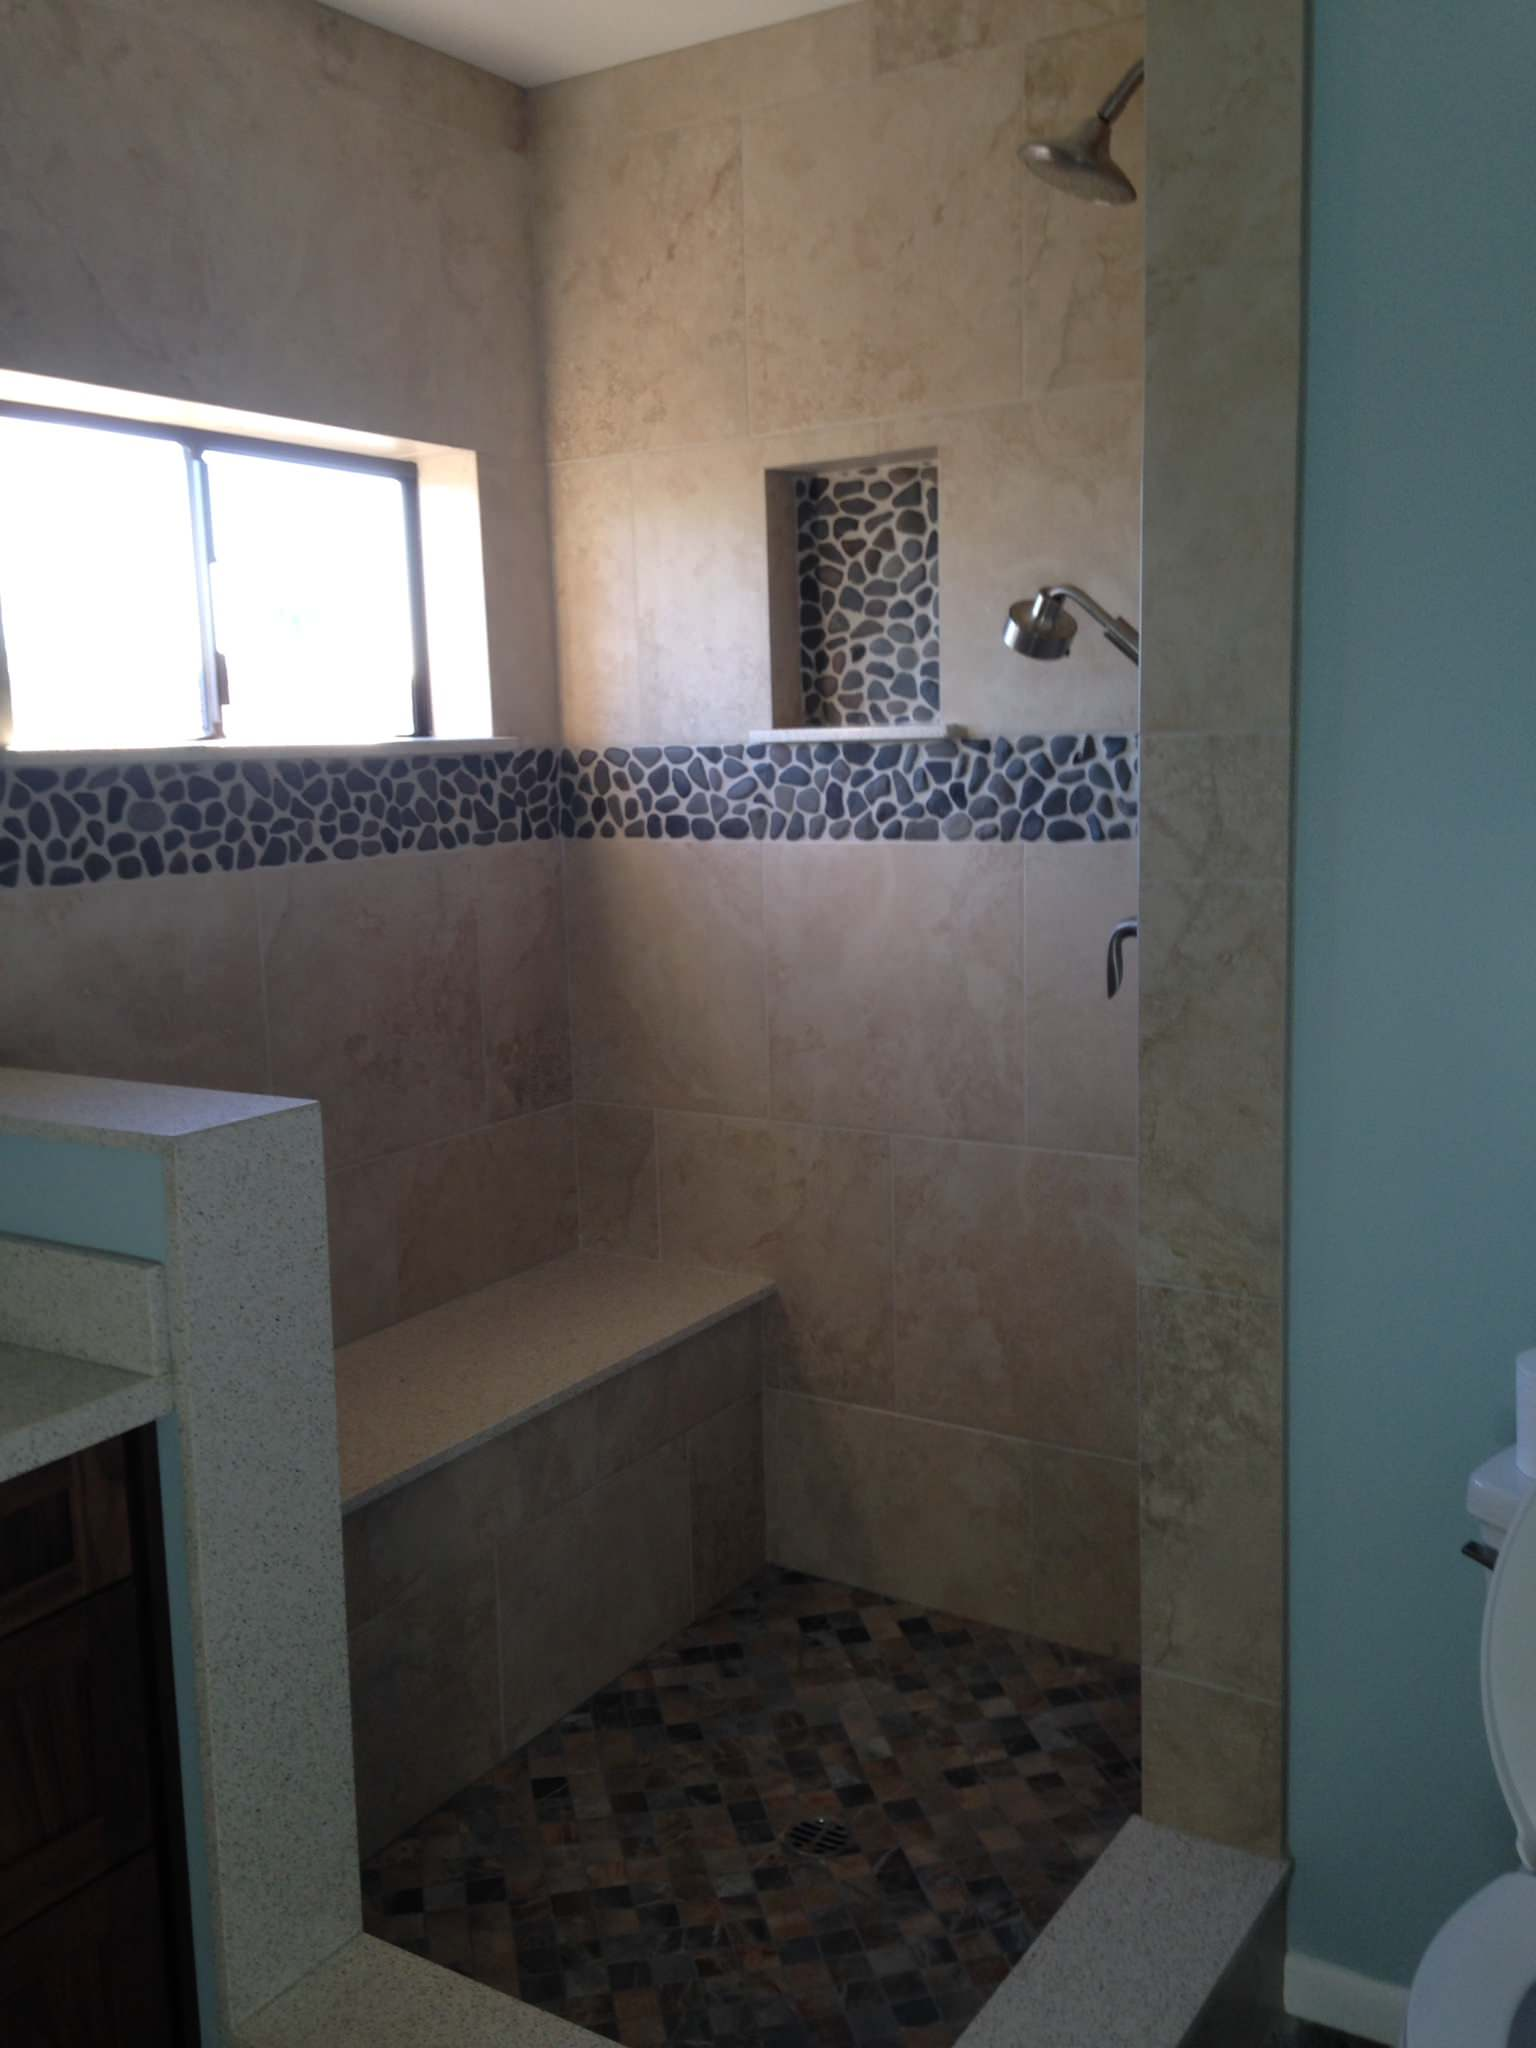 Shower finished without glass enclosure